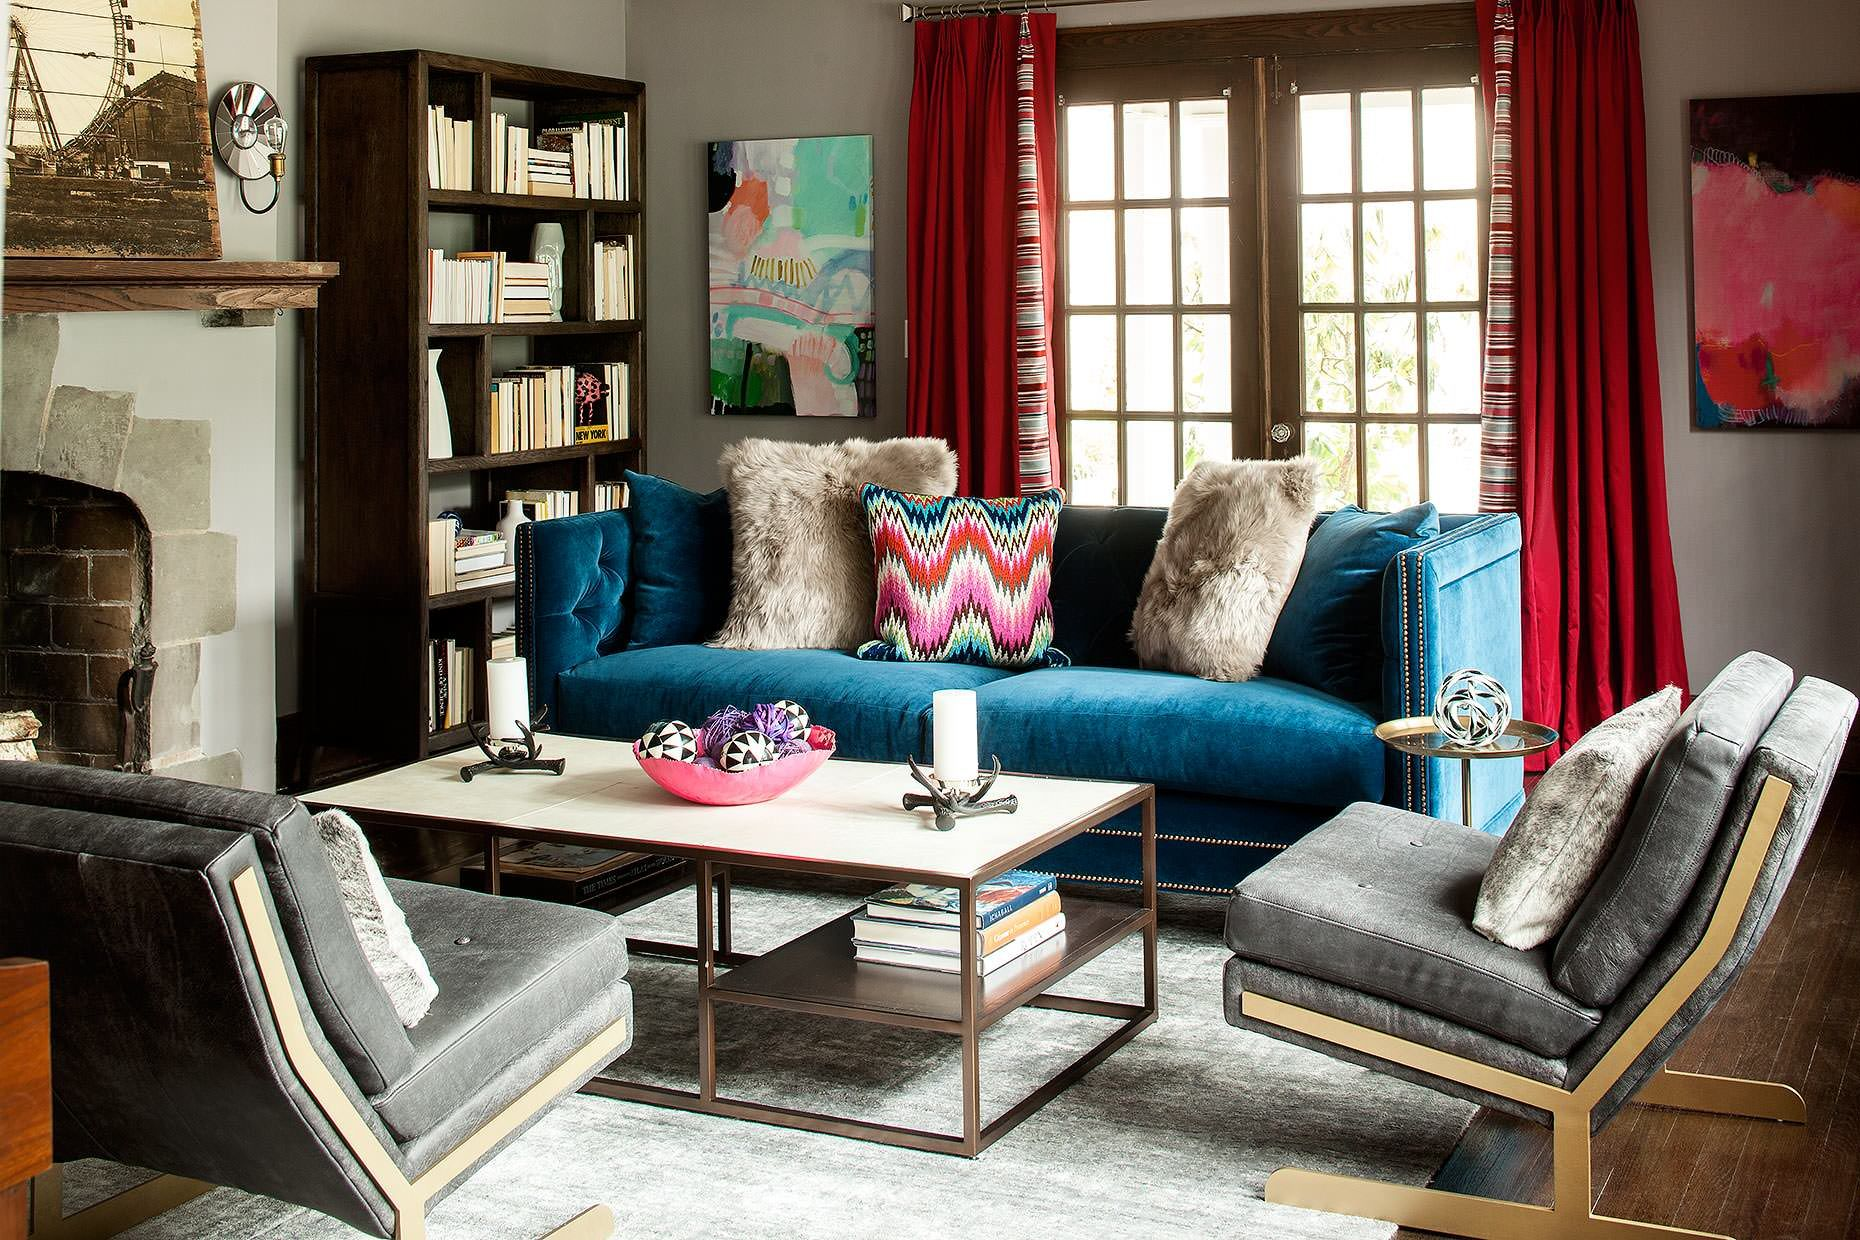 Which Type Of Velvet Sofa Should You Buy For Your Home Shoproomideas Cozy Living Room Design Farm House Living Room Eclectic Living Room